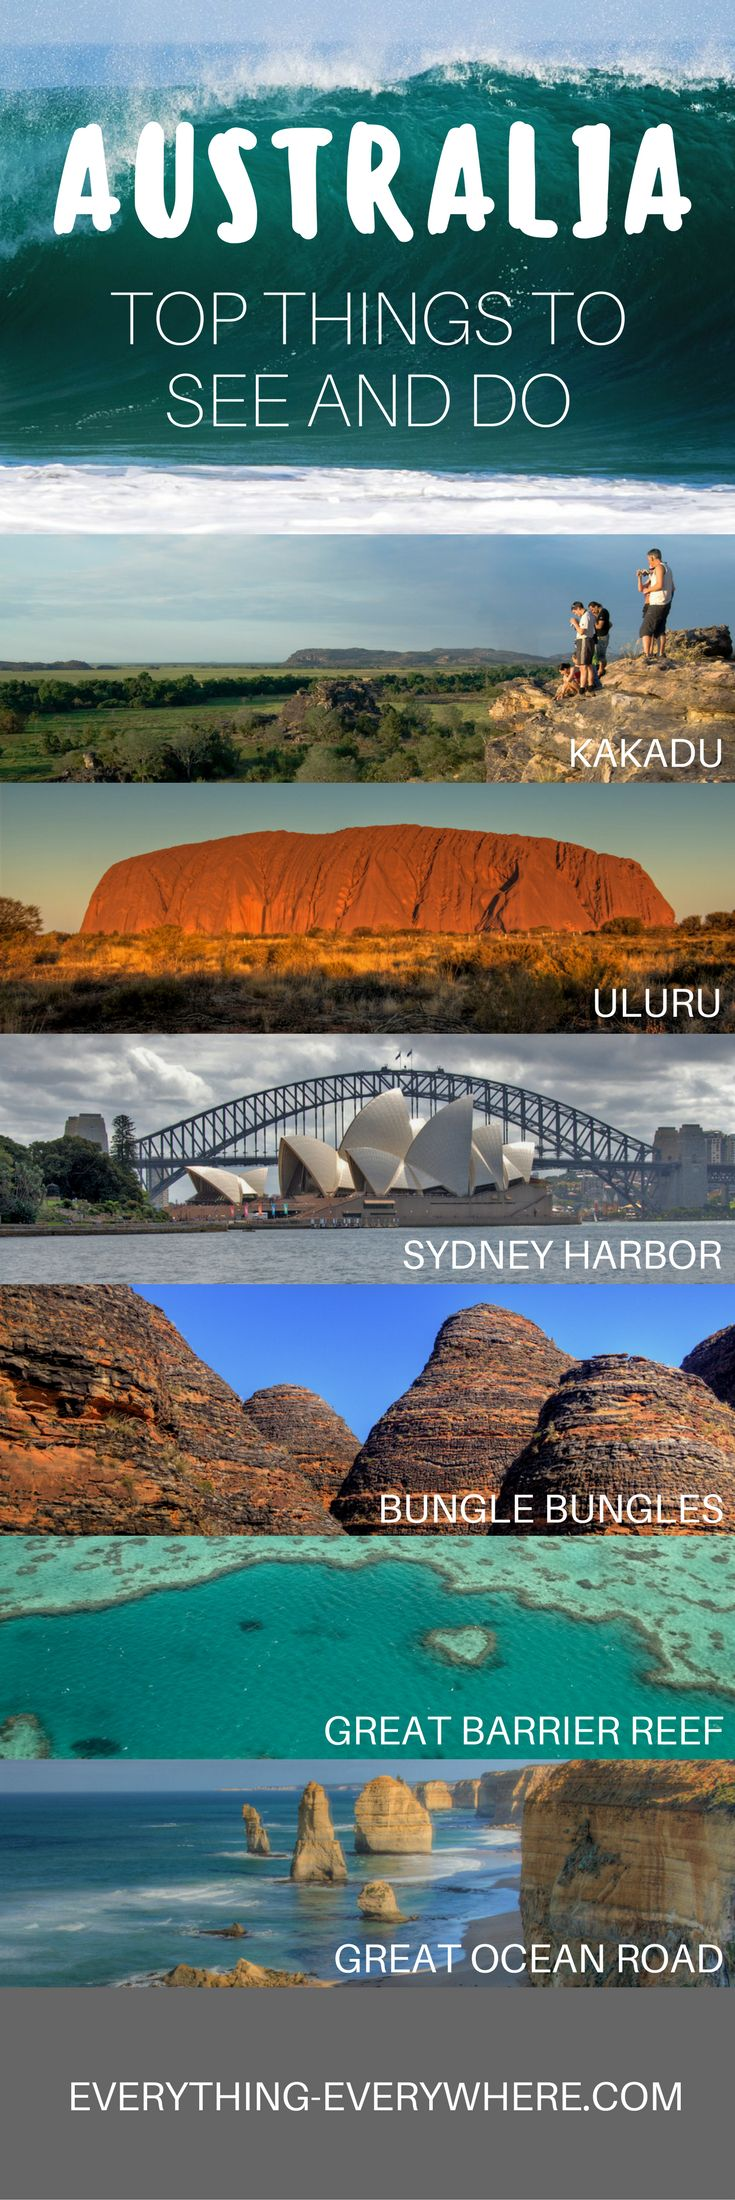 A guide to exploring the top sites and destinations in Australia. From Sydney to Uluru to the Great Barrier Reef, these are the best places to visit on the continent. | Everything Everywhere Destination Guide